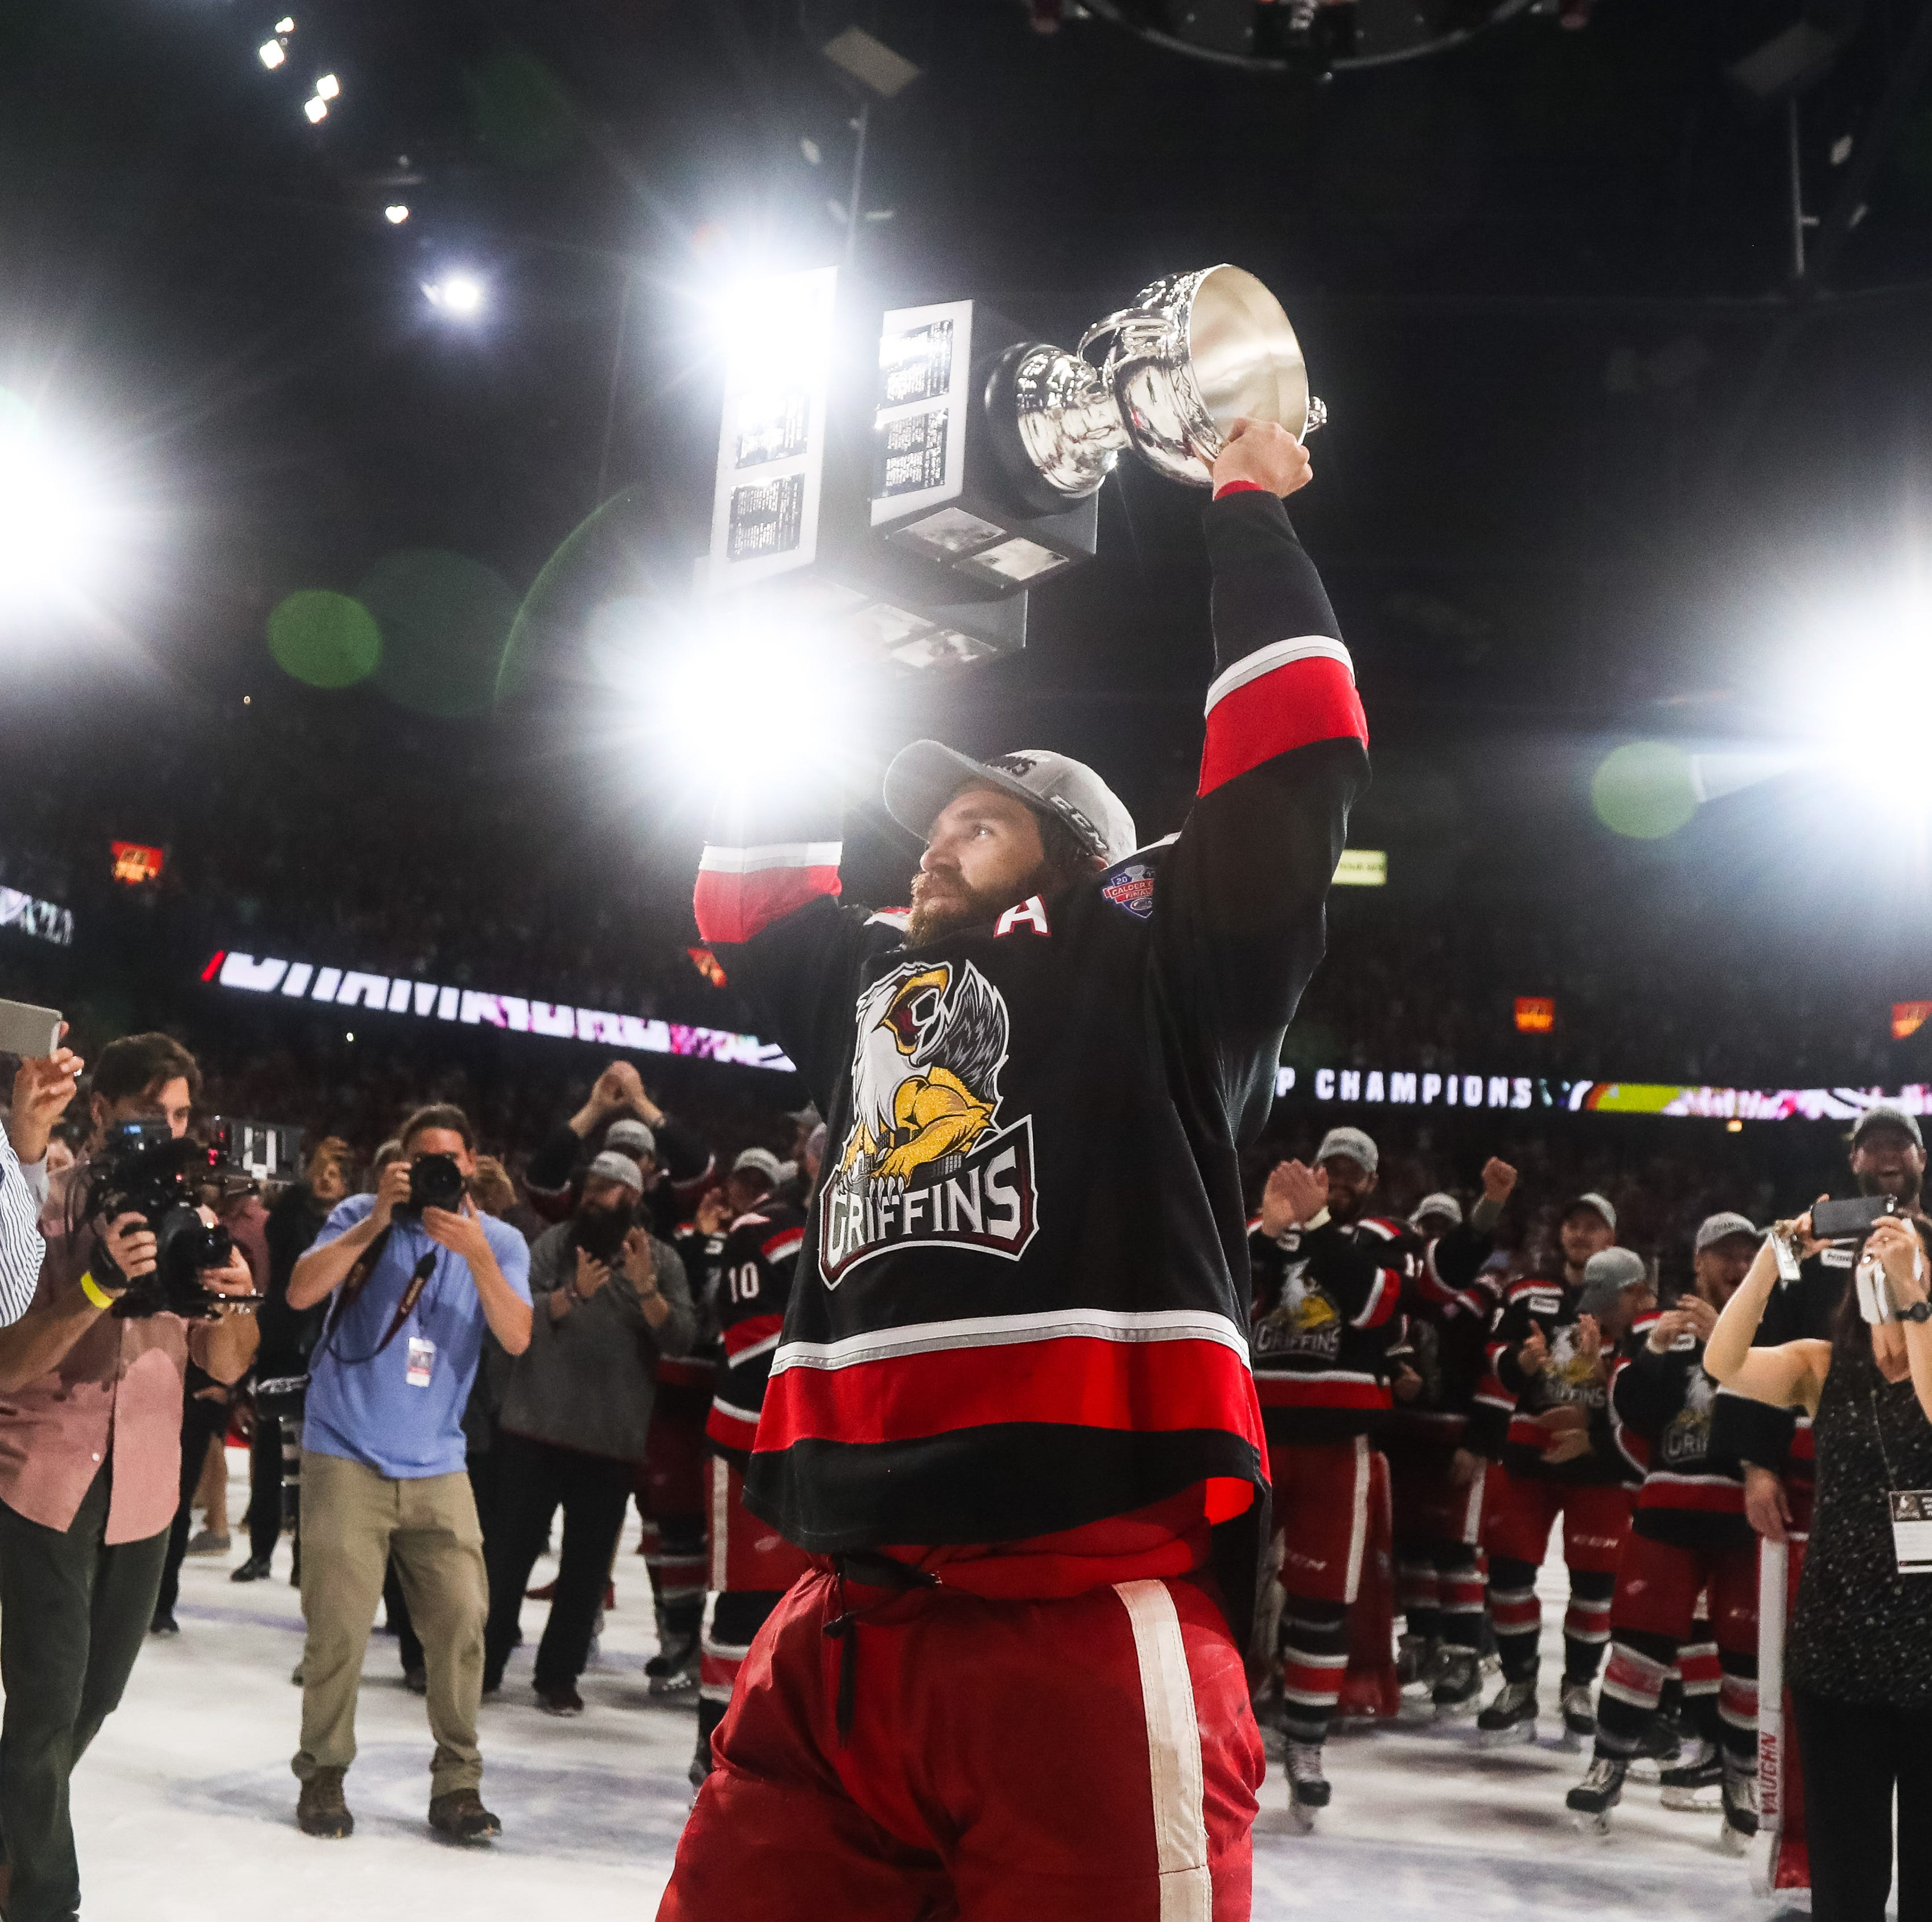 Griffins captain among oldest in AHL. Why the NHL has never called